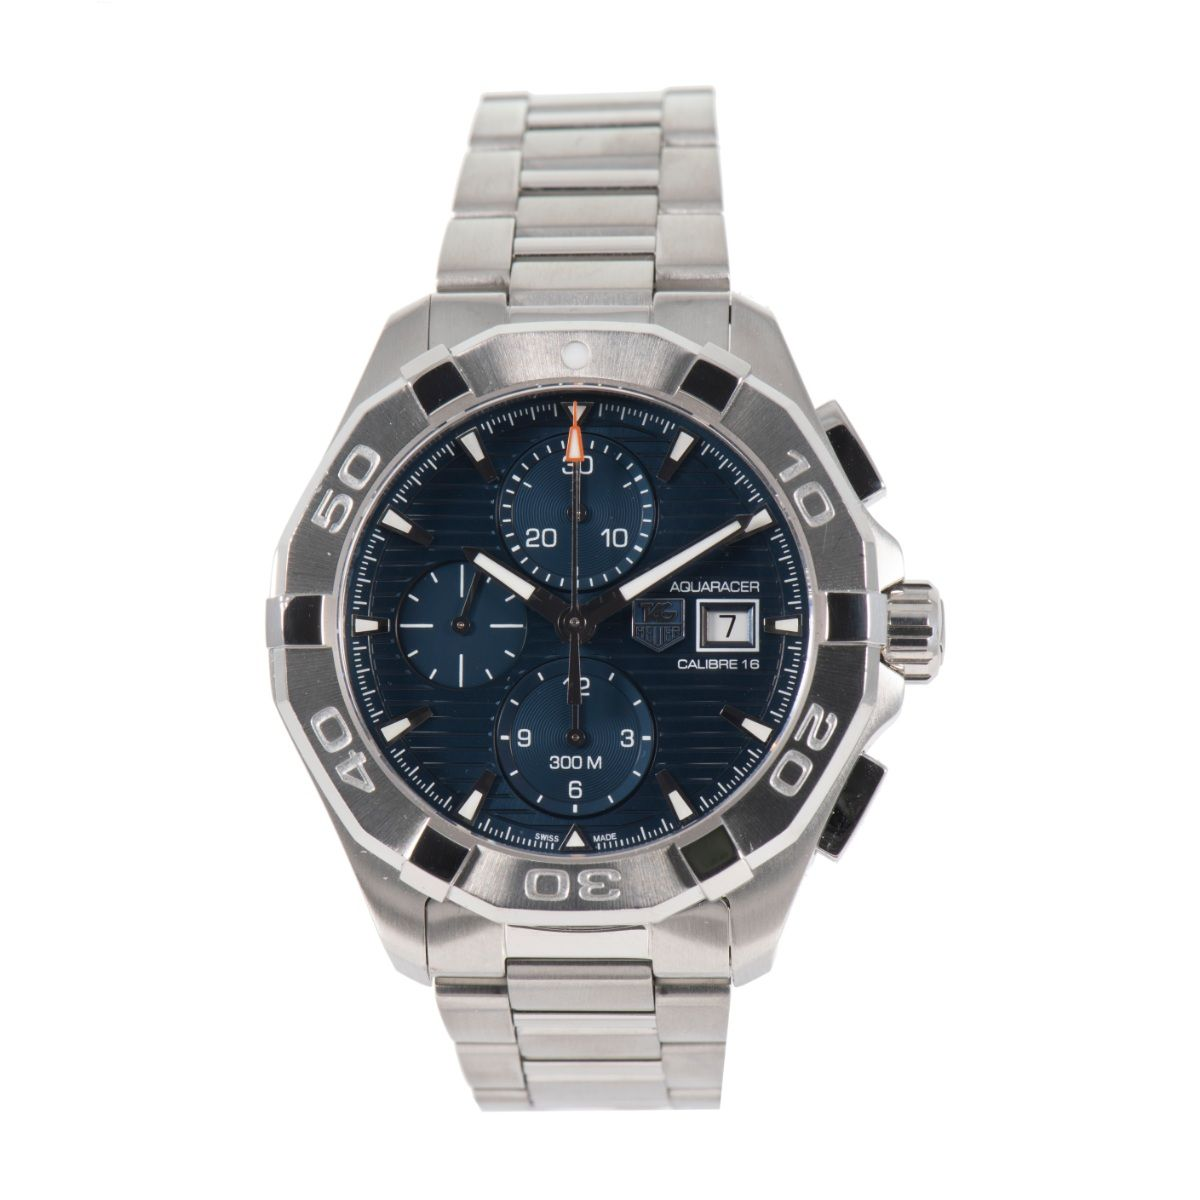 Tag Heuer Aquaracer Automatic Chronograph CAY2112 44mm Mens Watch Blue Dial